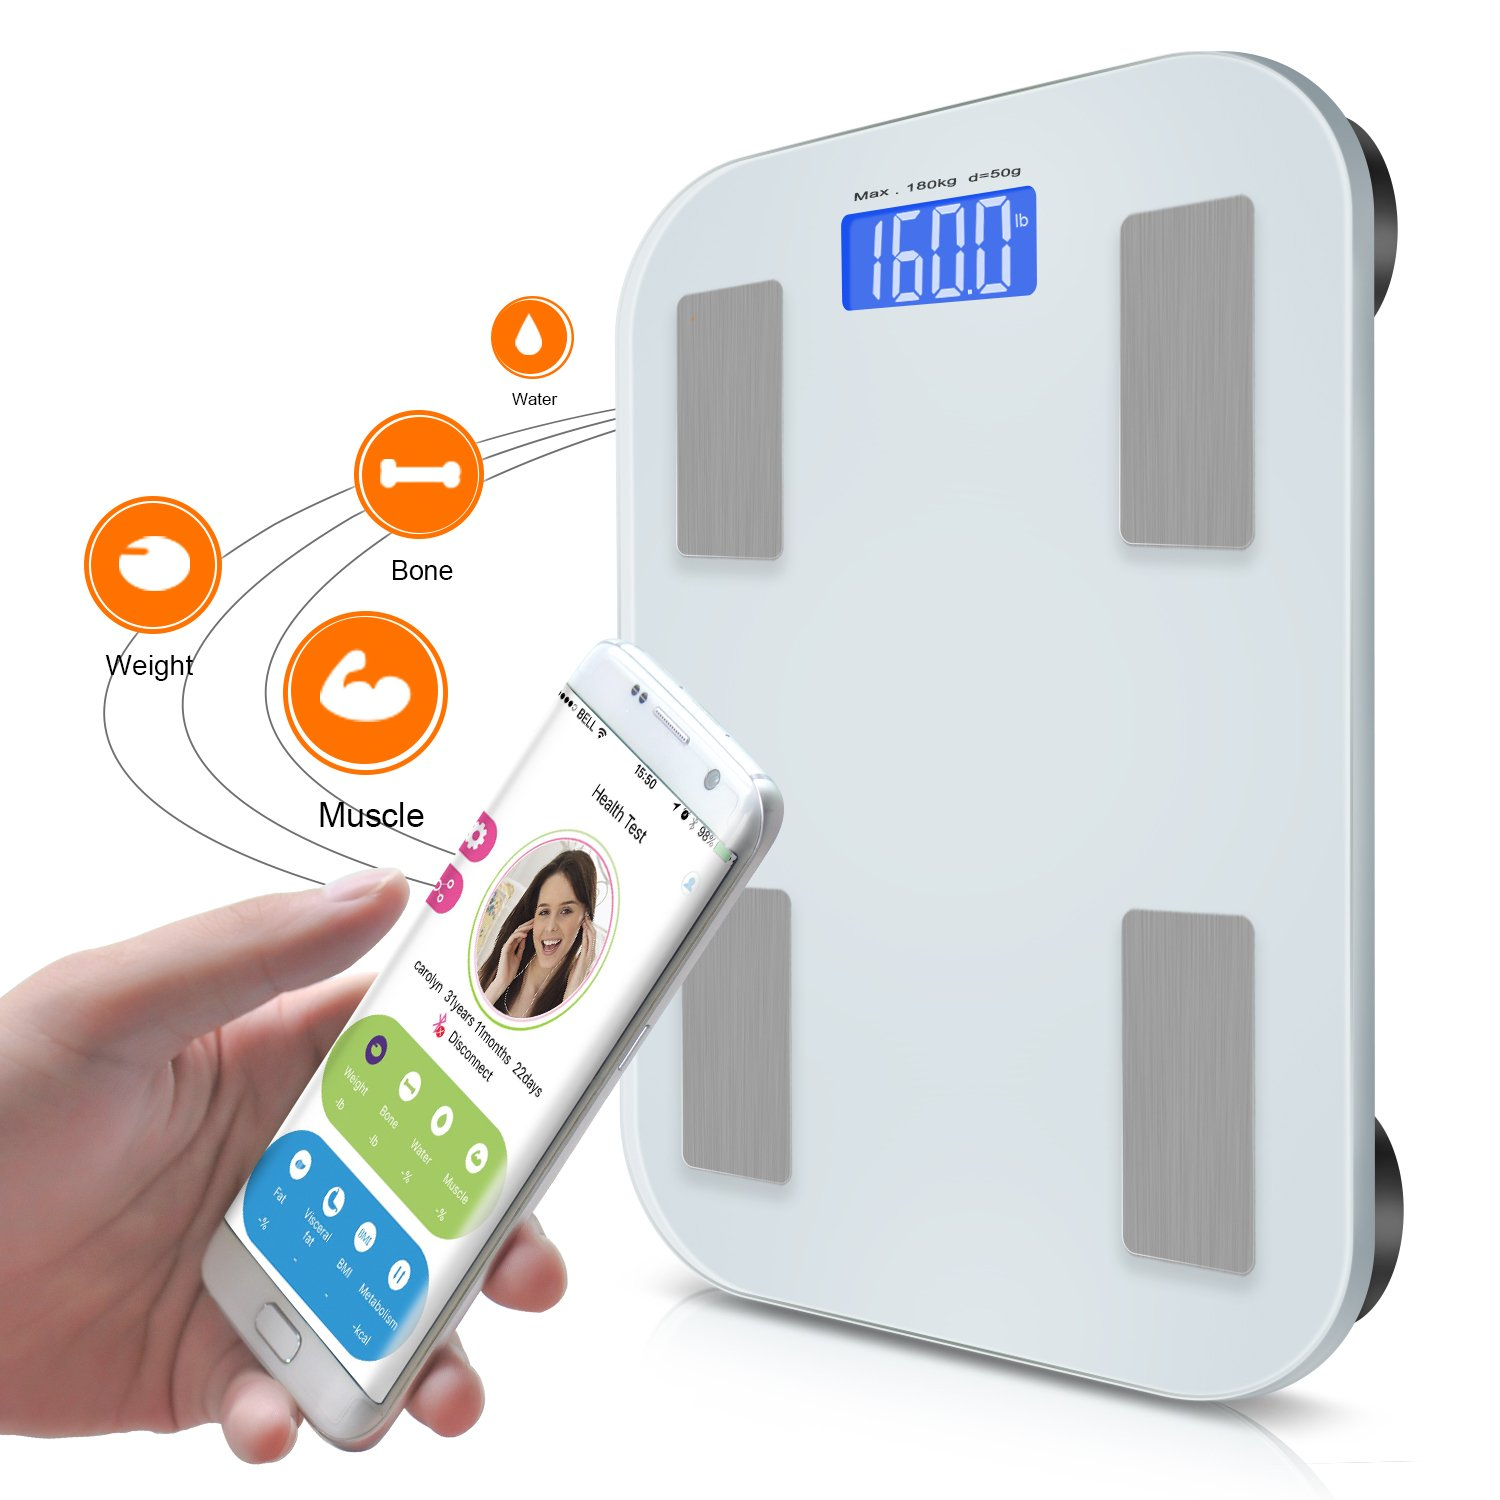 Adoric Smart Scale Bathroom Scale with Free APP for Android and IOS, Body Composition Analysis Measuring Weight, Bone, Water, Muscle, Fat, BMI, BMR by Adoric (Image #2)